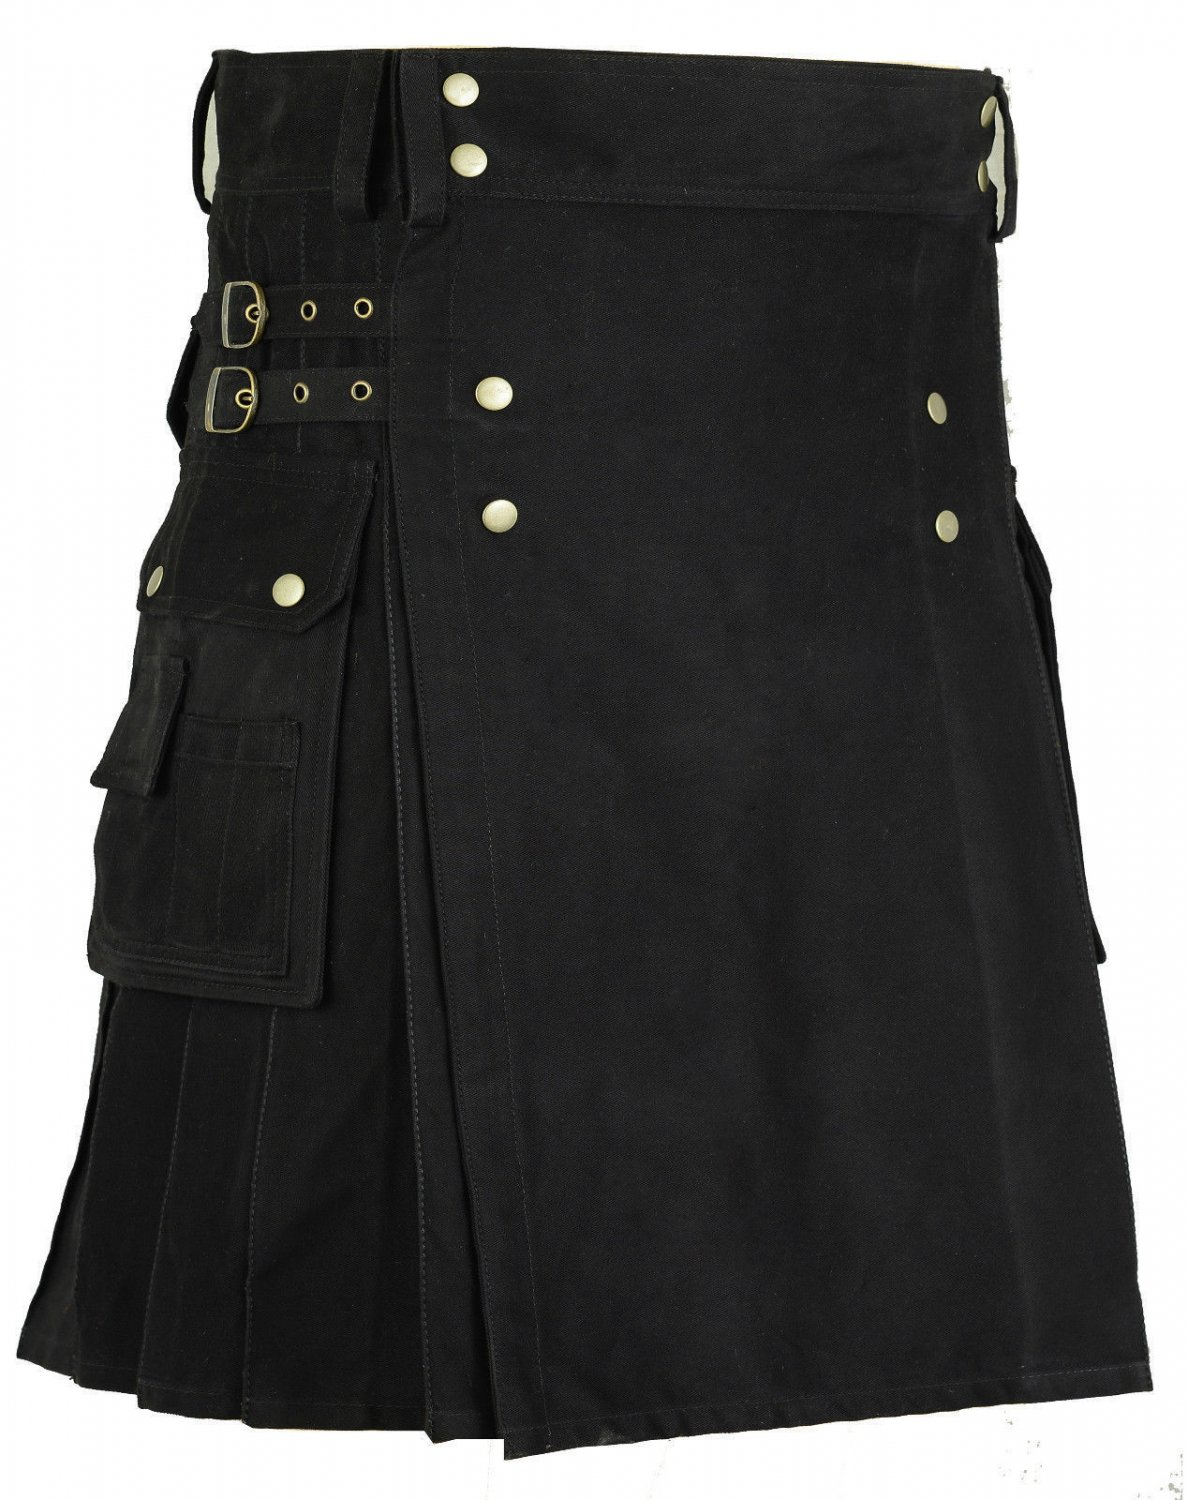 Size 40 Handmade Gothic Black Pure Cotton Kilt With Utility Side Cargo Pockets